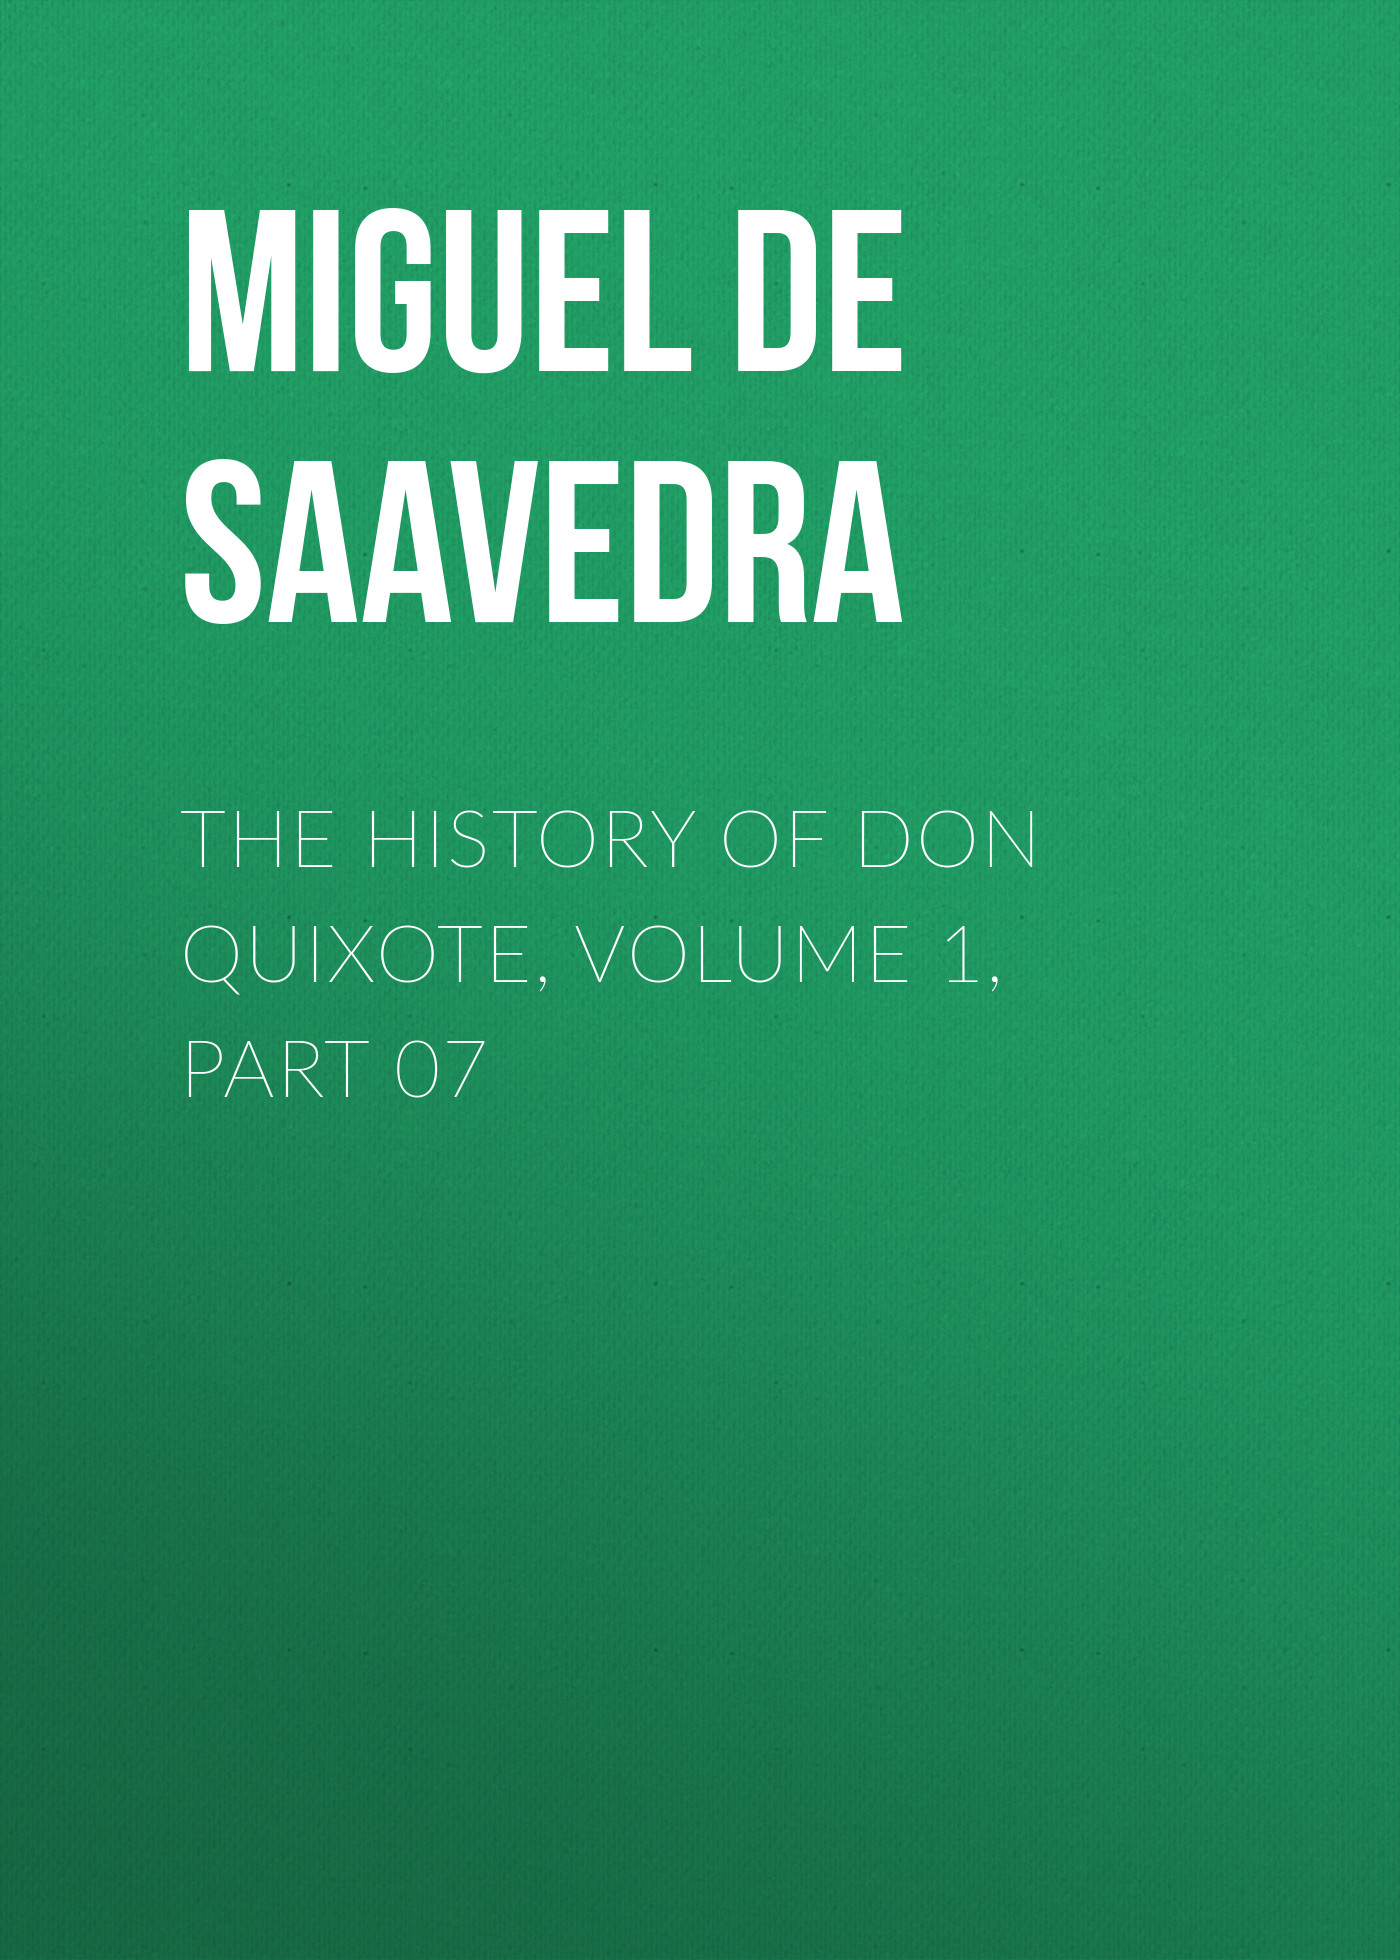 Мигель де Сервантес Сааведра The History of Don Quixote, Volume 1, Part 07 термос для еды termico 750 мл